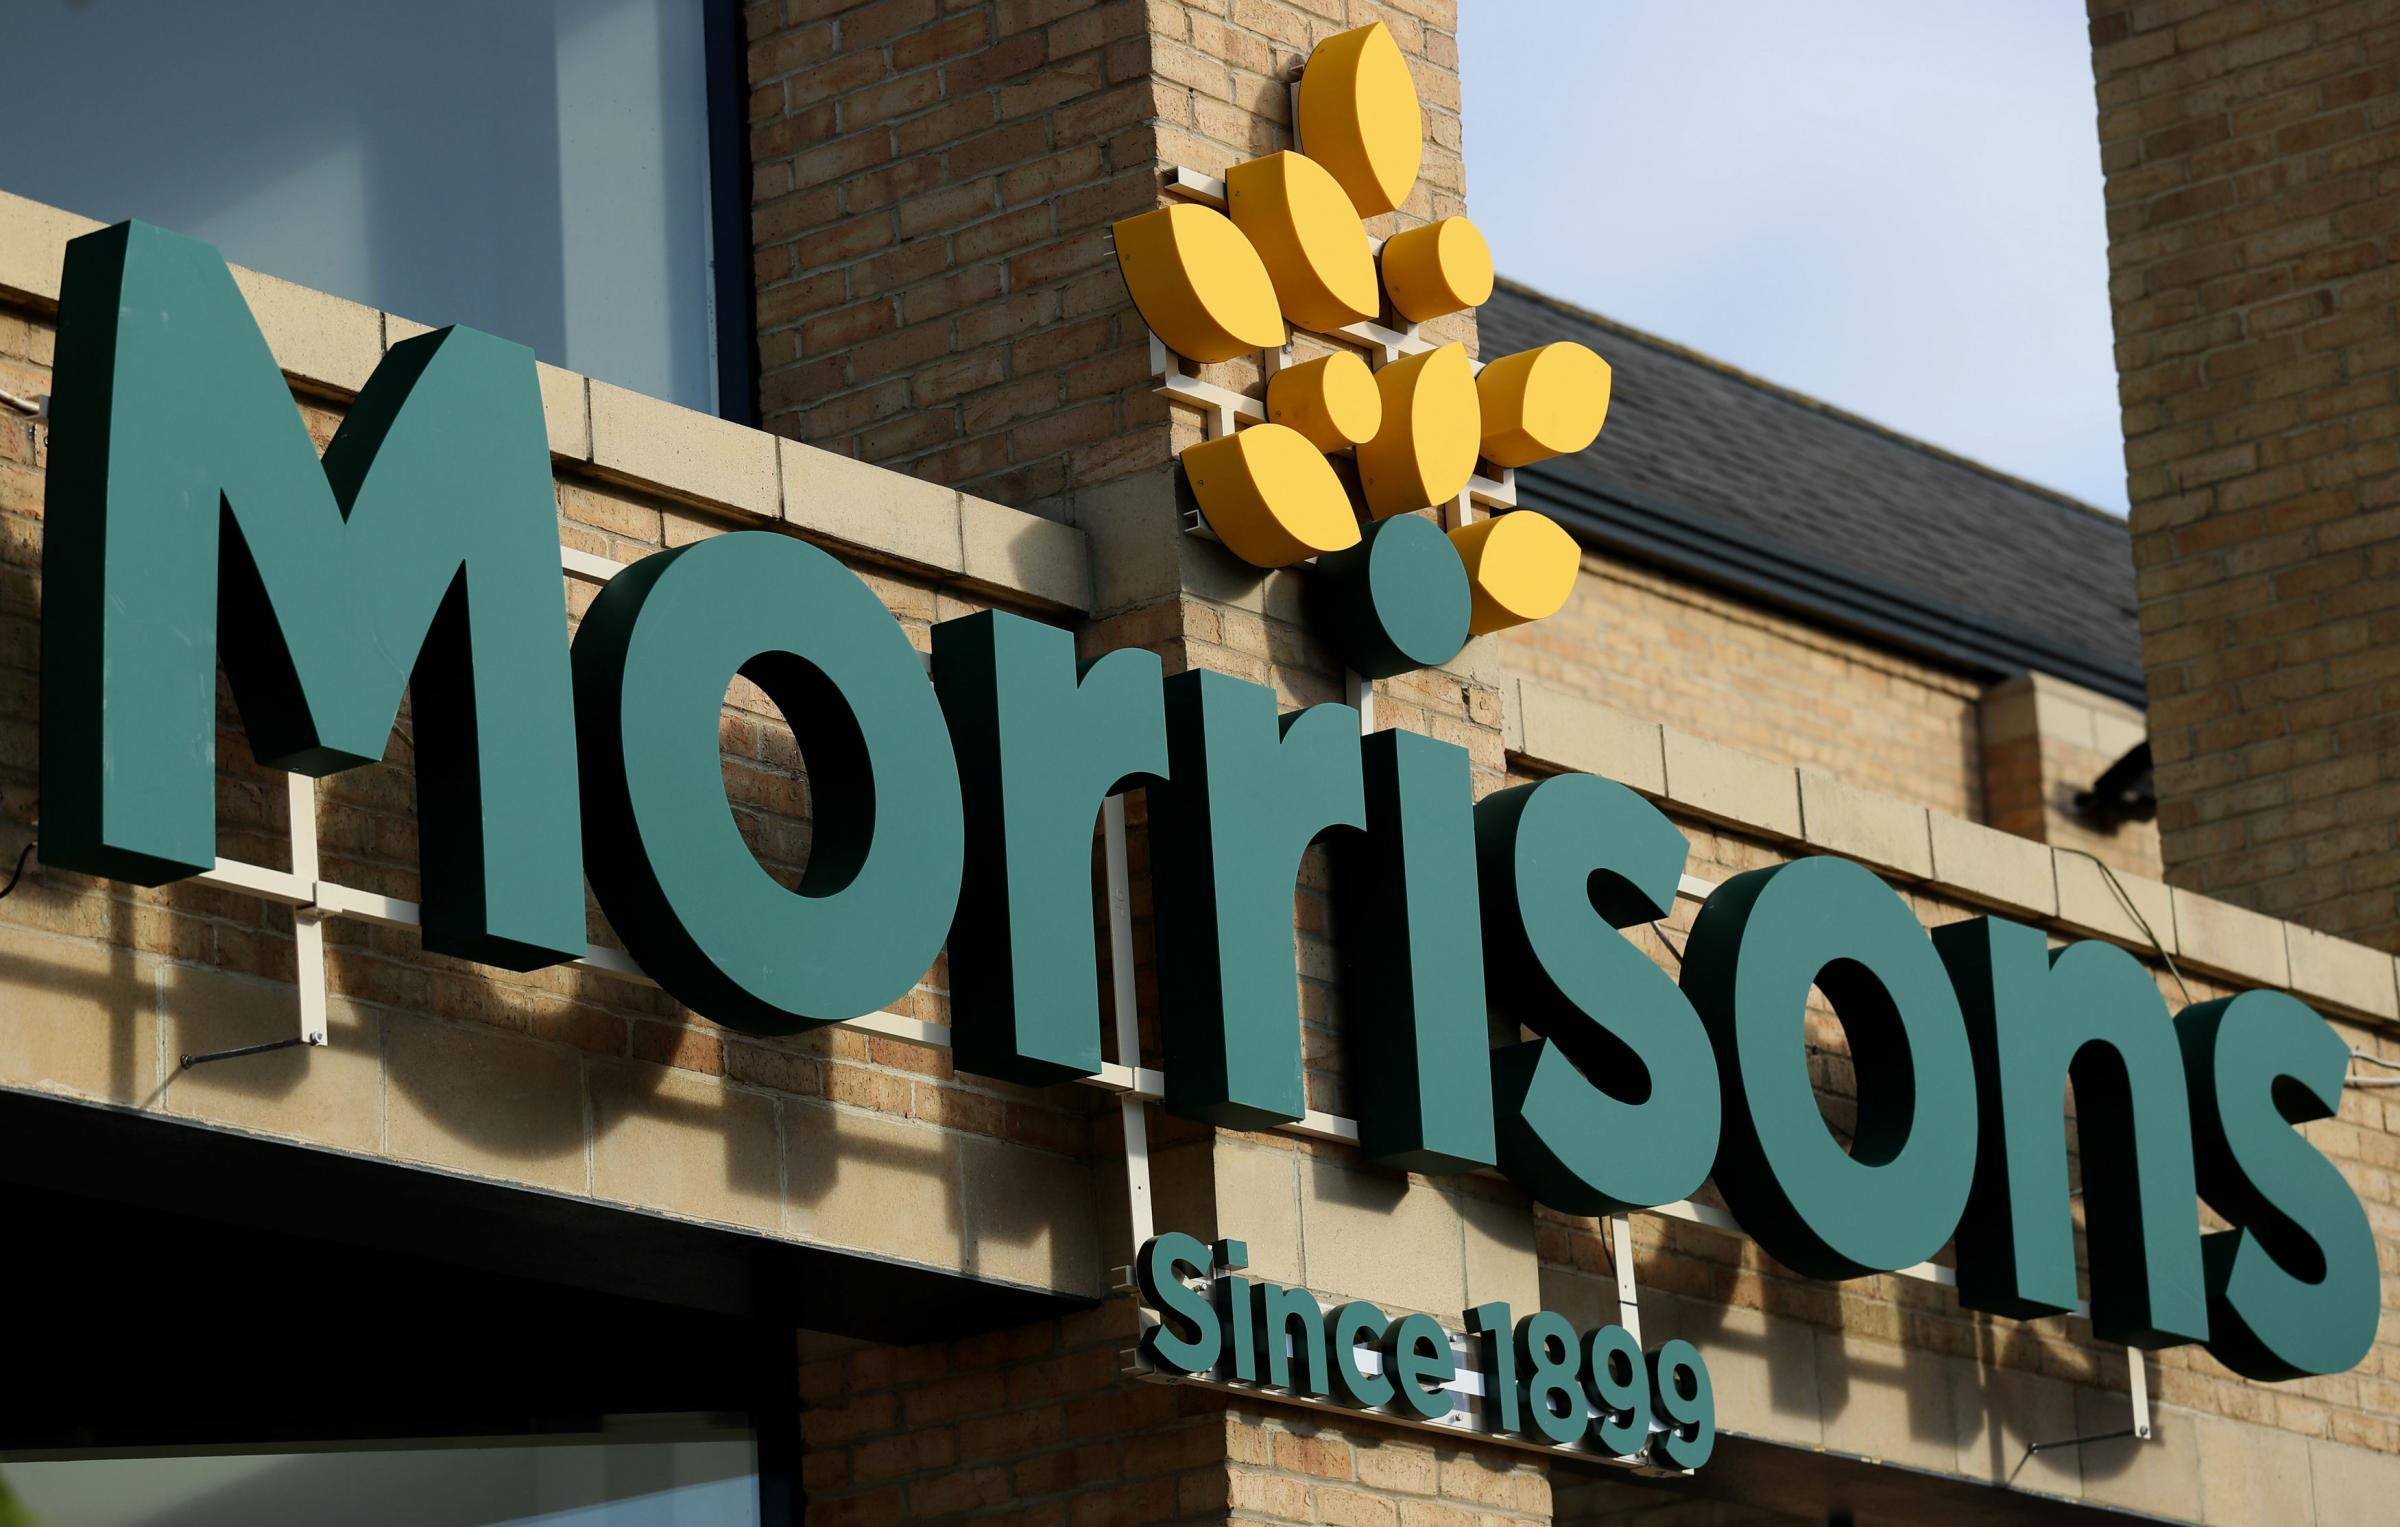 Morrison has posted a growth in sales in the first quarter of this year. Photo:Chris Radburn/PA Wire